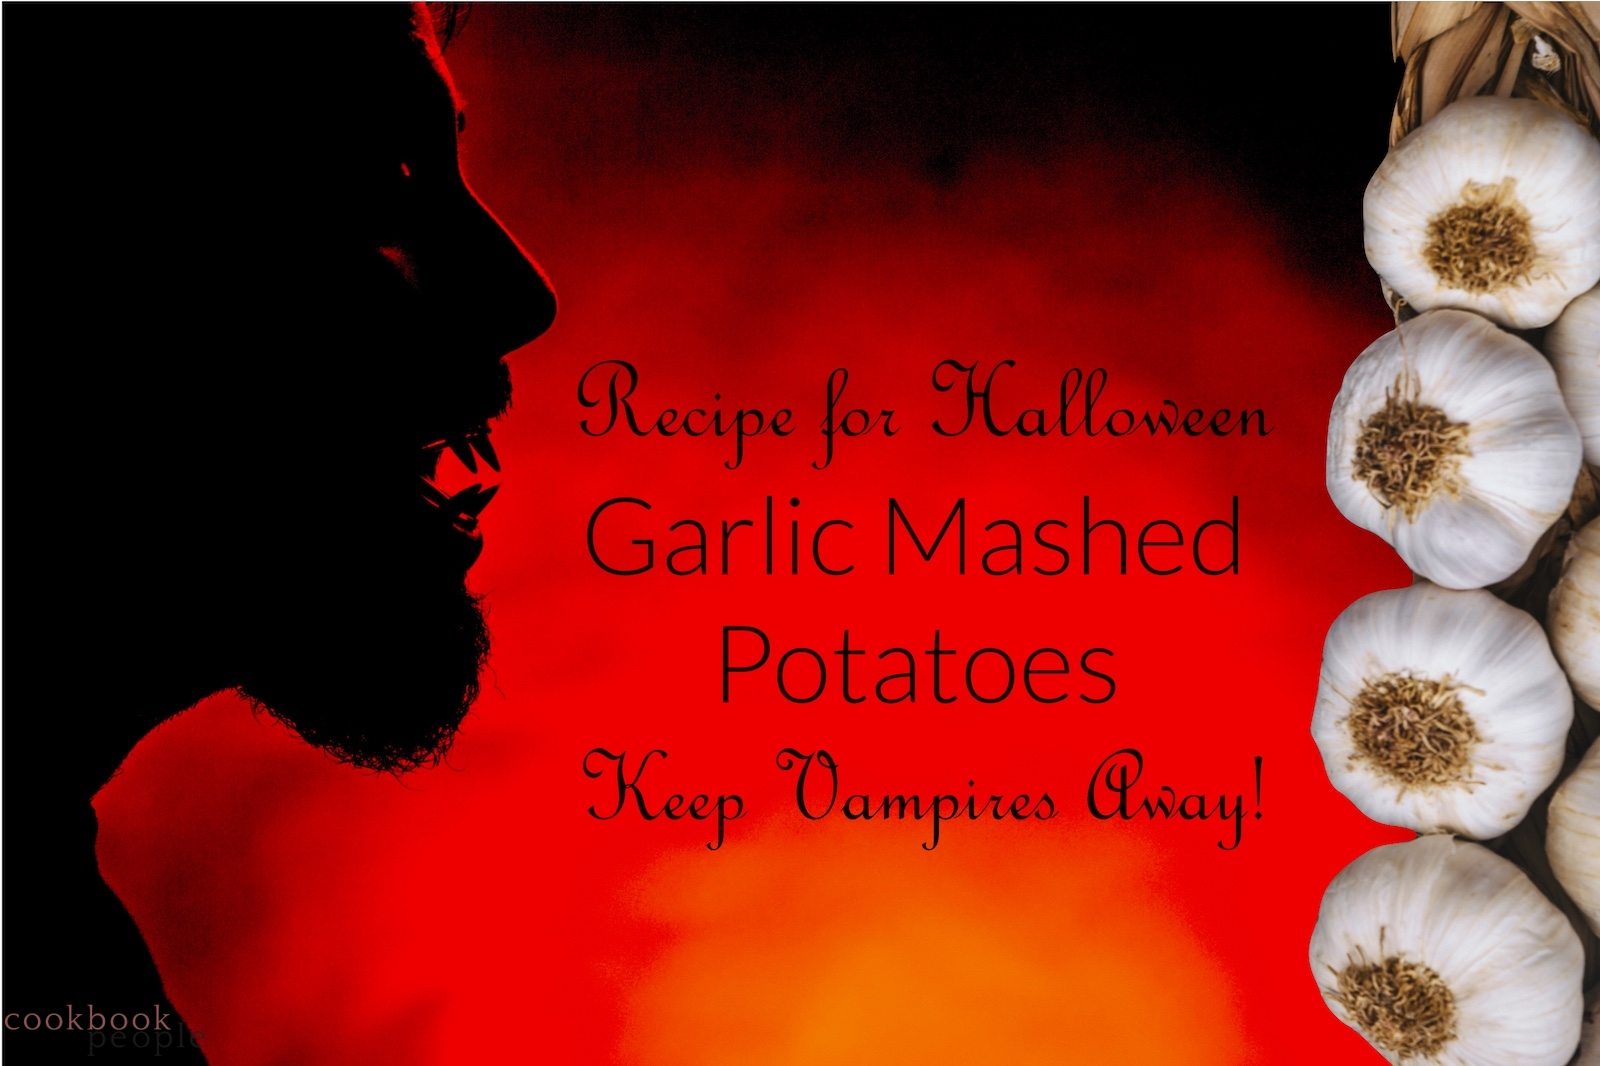 Silhouette of vampire and string of garlic with title: Recipe for Halloween Garlic Mashed Potatoes - Keep Vampires Away!